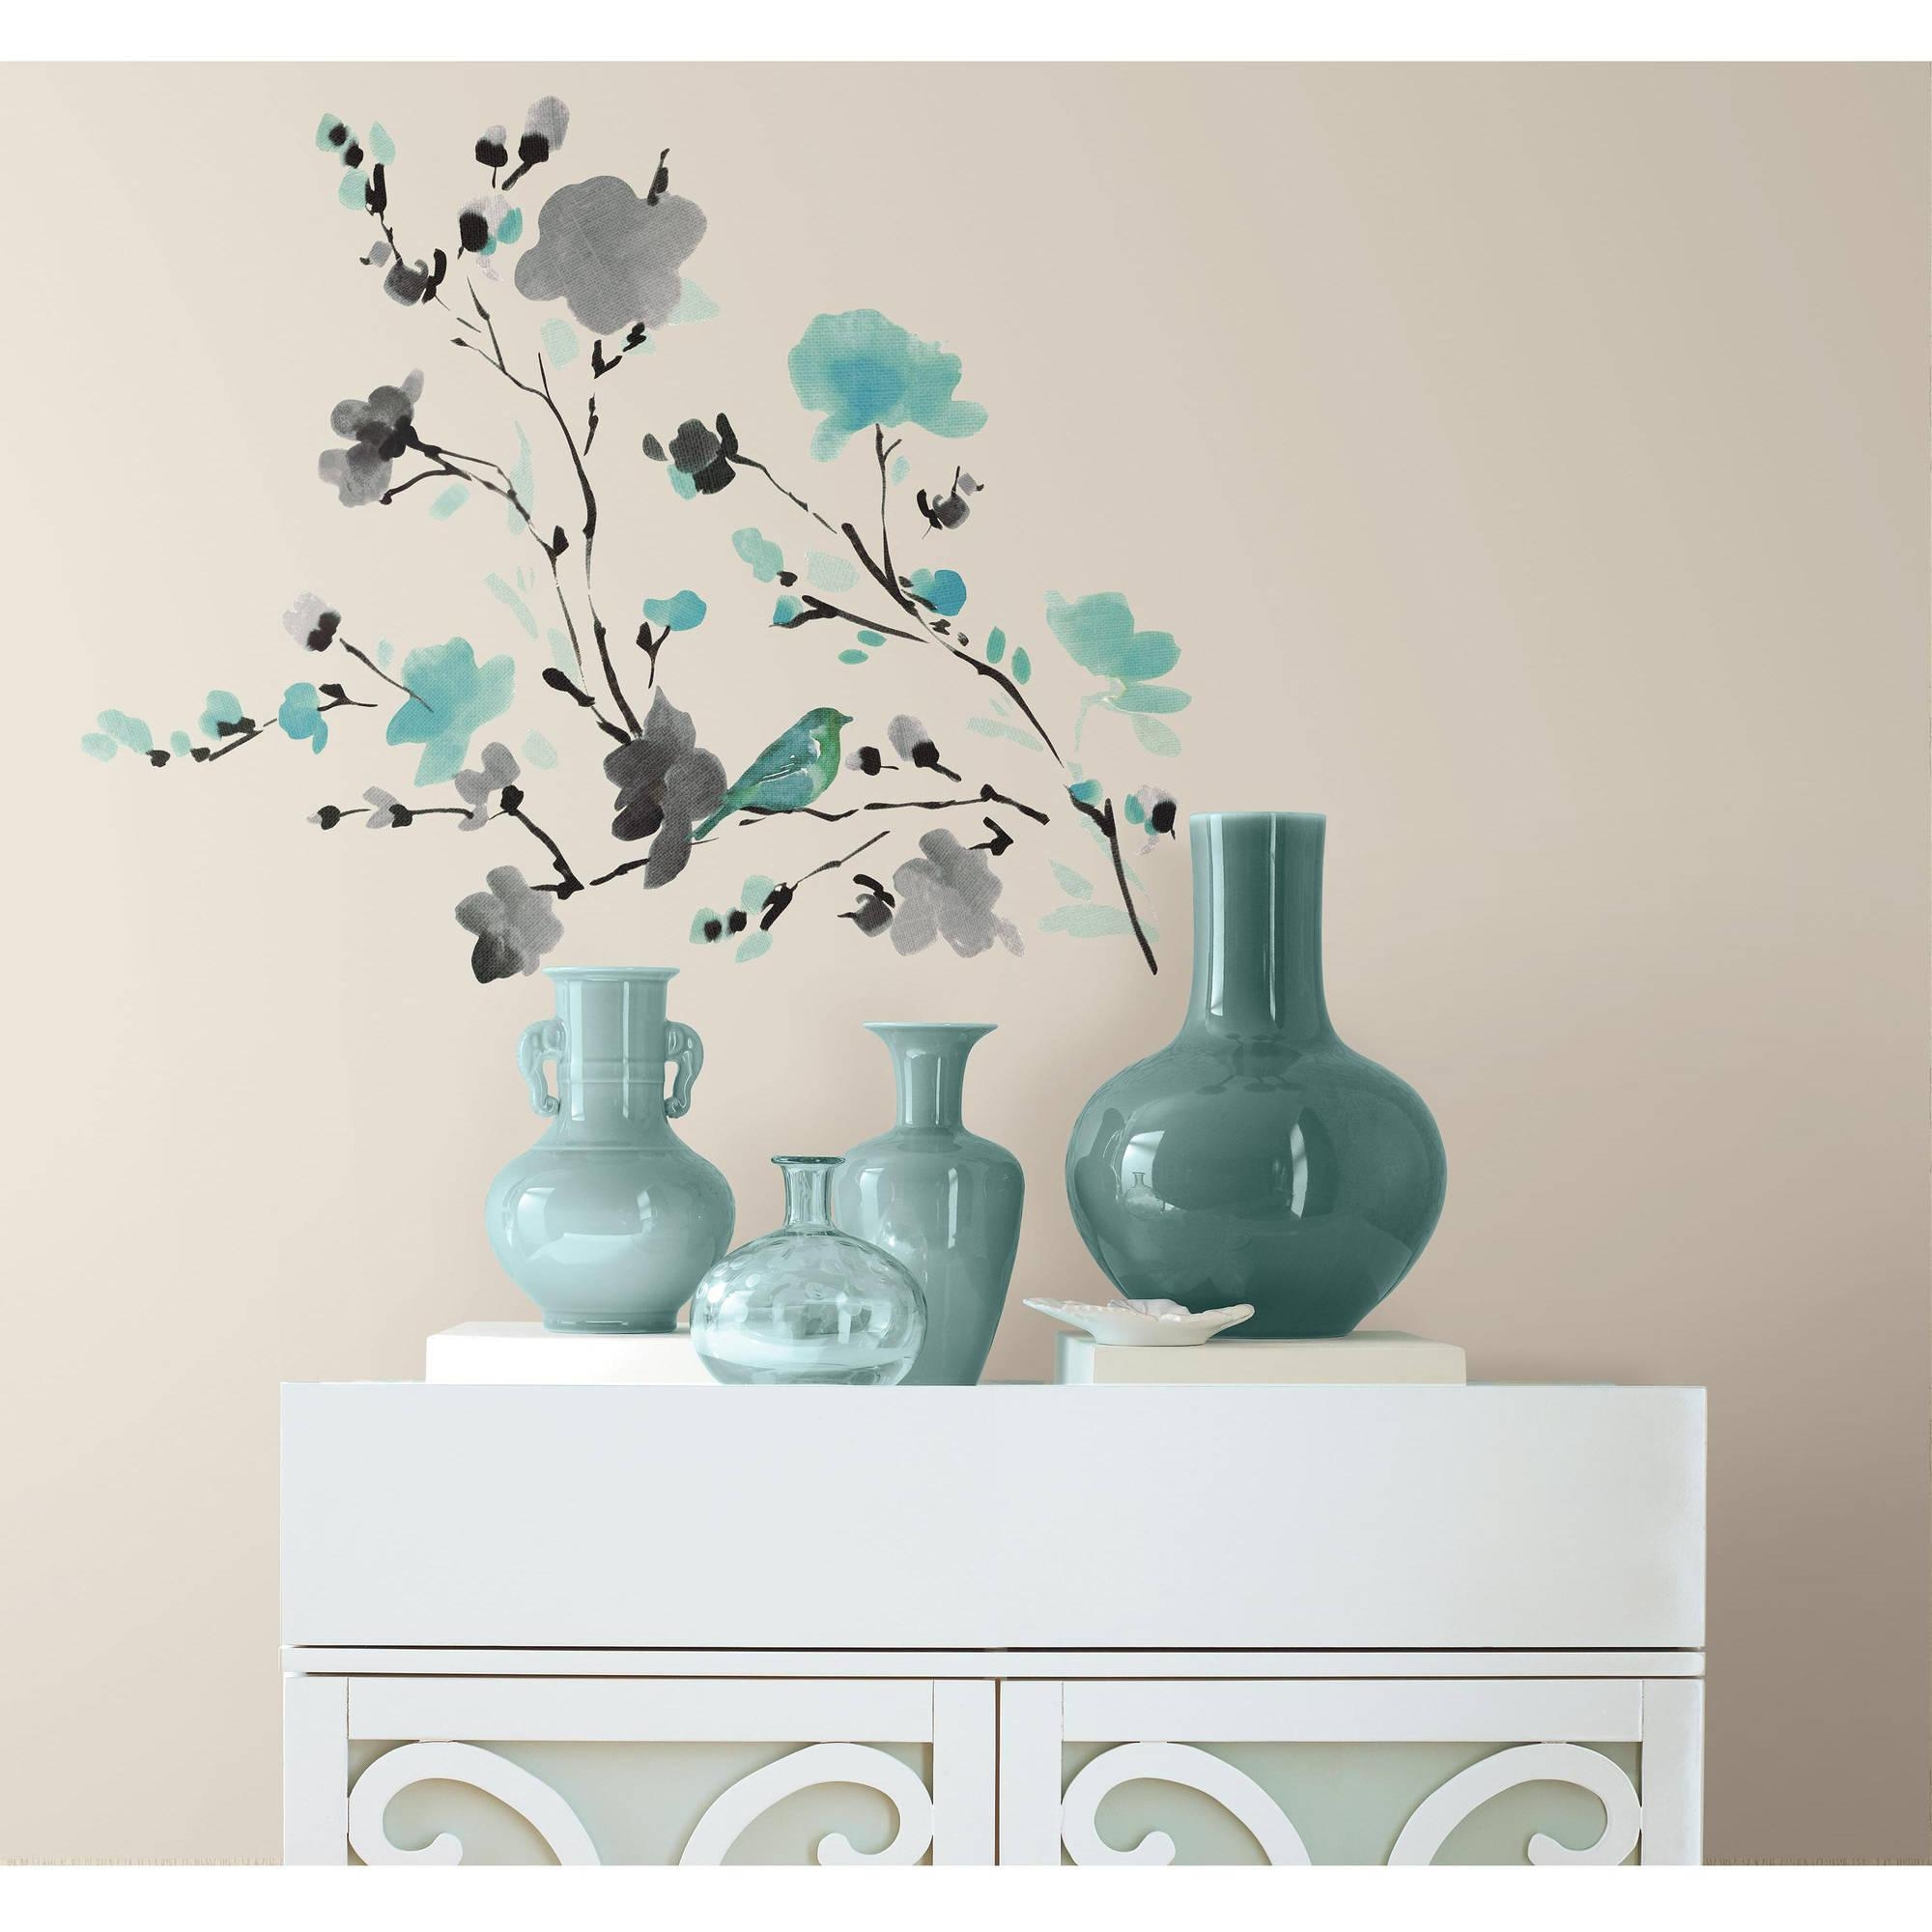 Blossom Watercolor Bird Branch Peel And Stick Wall Decals Regarding Walmart Wall Stickers (Image 2 of 20)